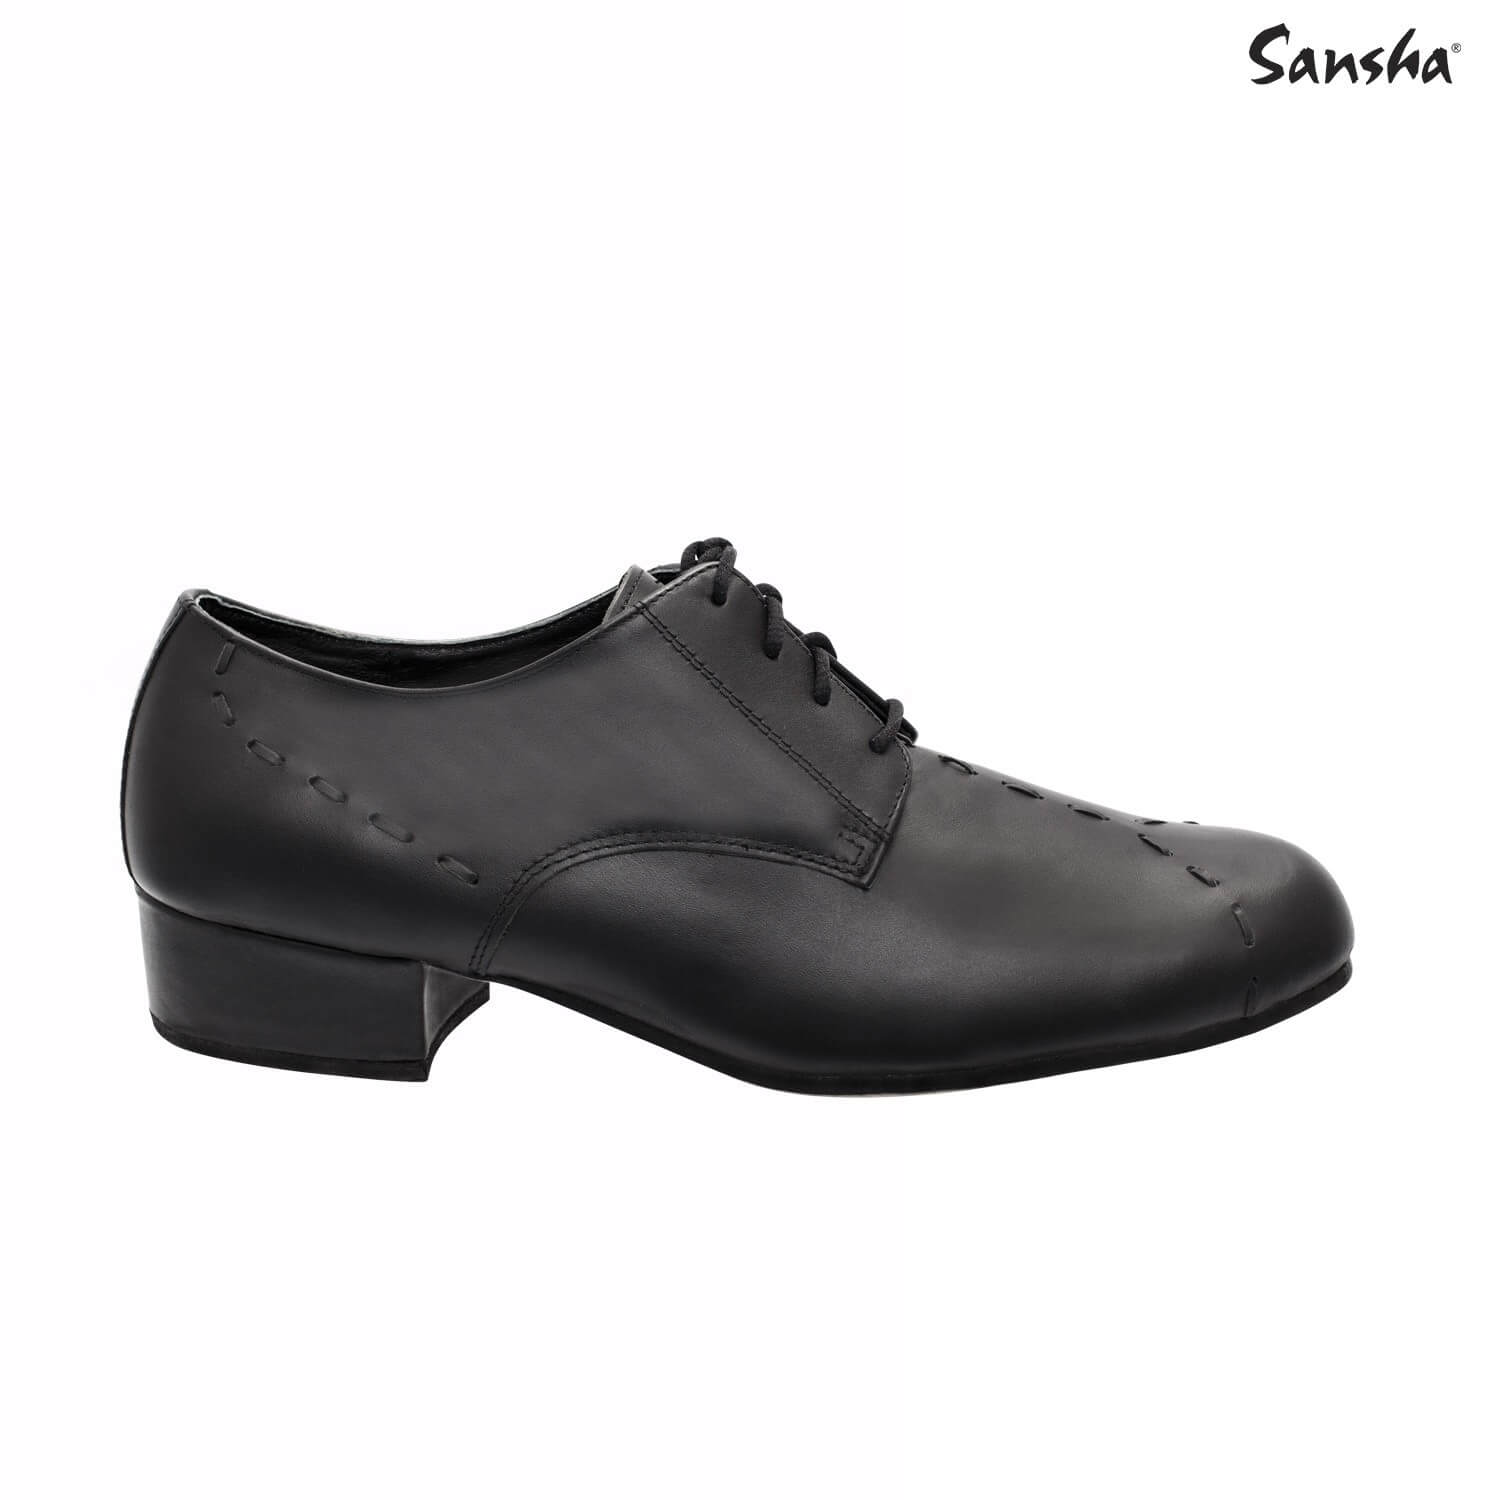 Sansha Men's Tarditional Charcater Shoes